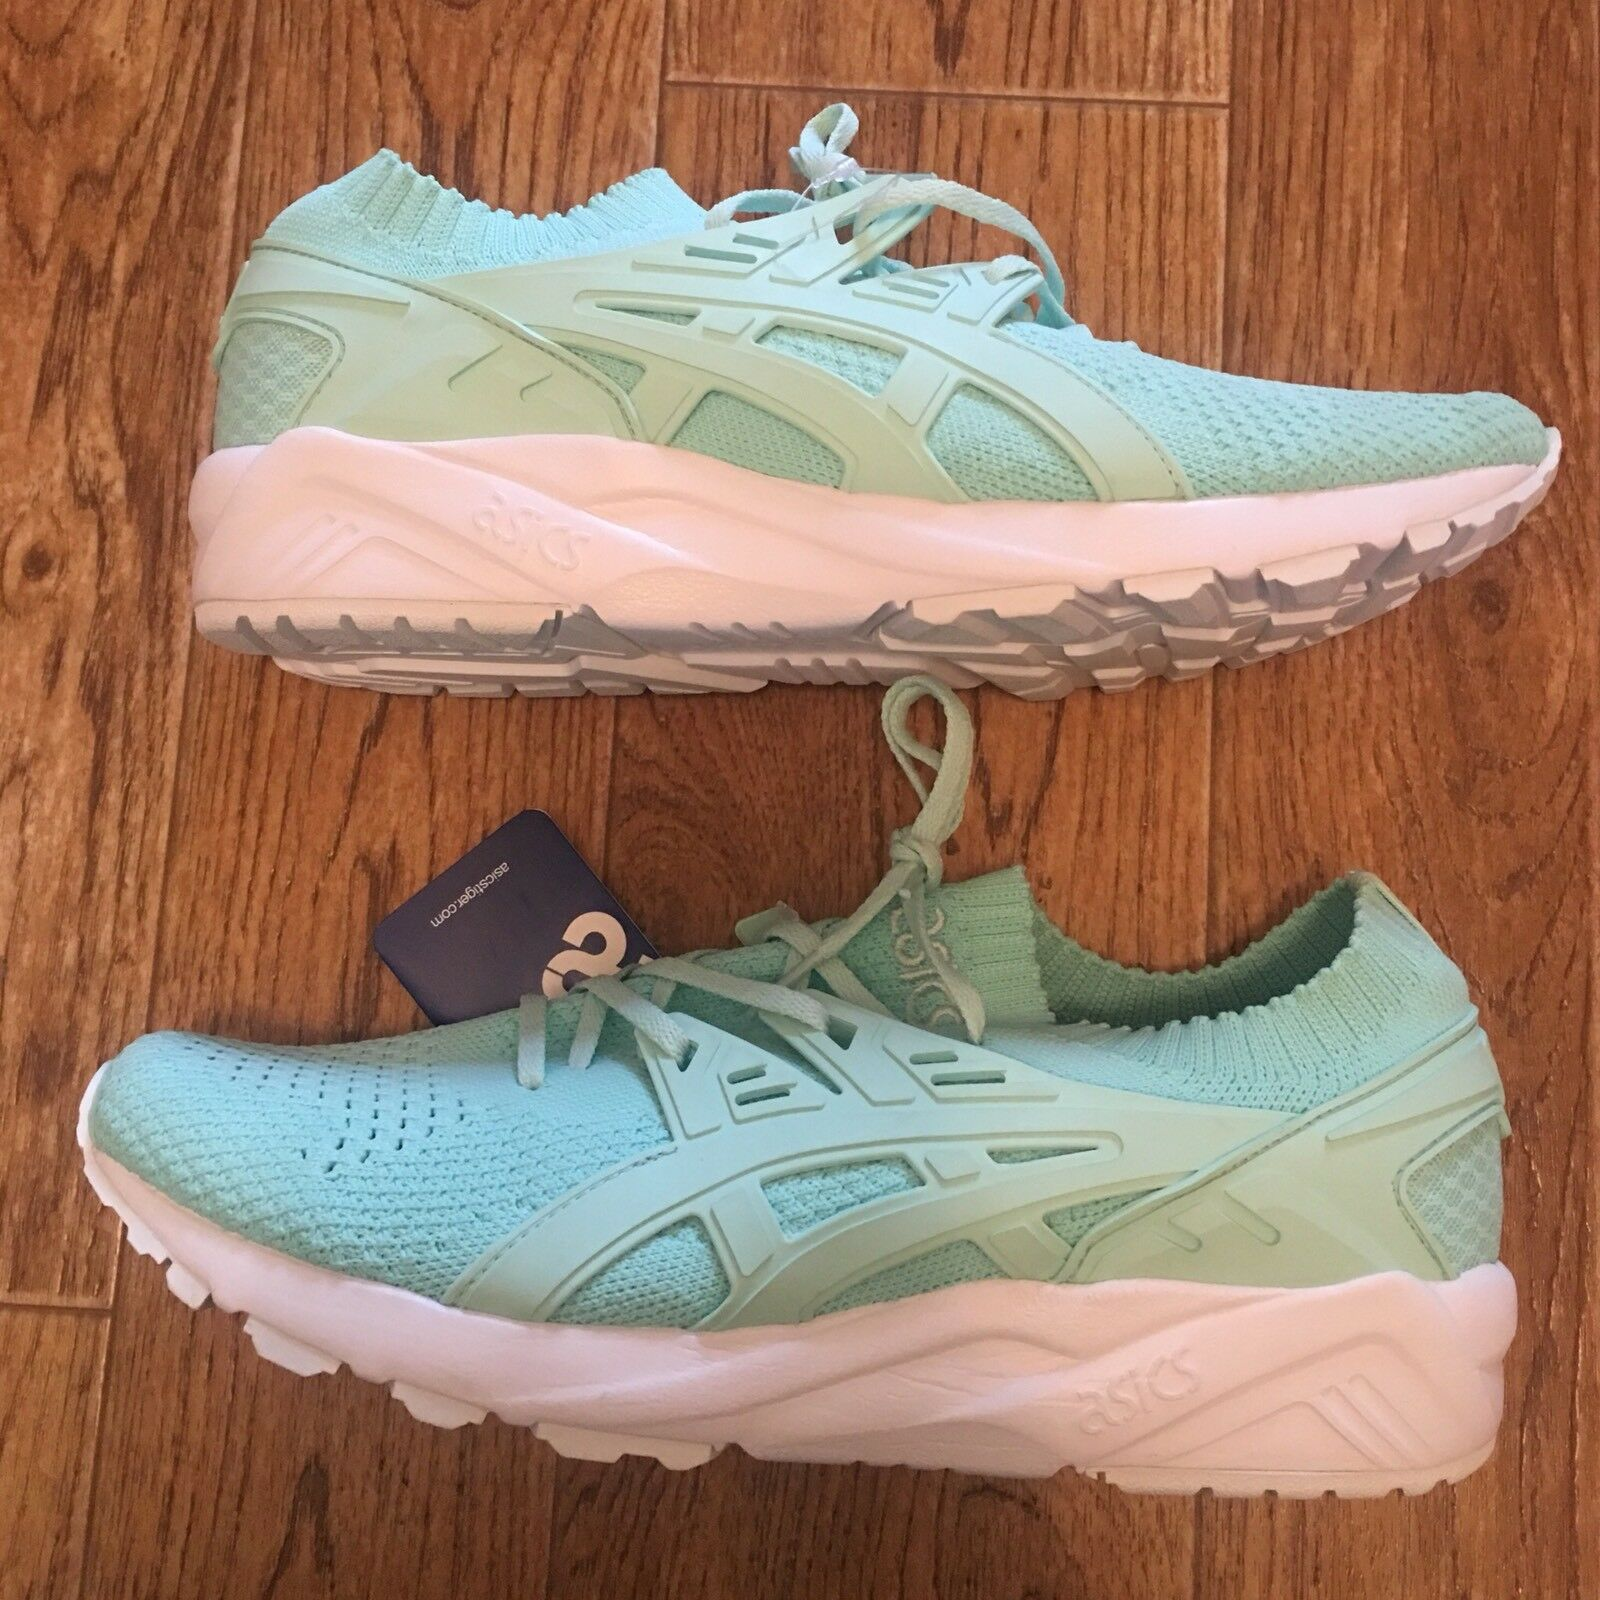 Asics Gel-Kayano Trainer Knit Mint Green Mens shoes US Size 9 NEW